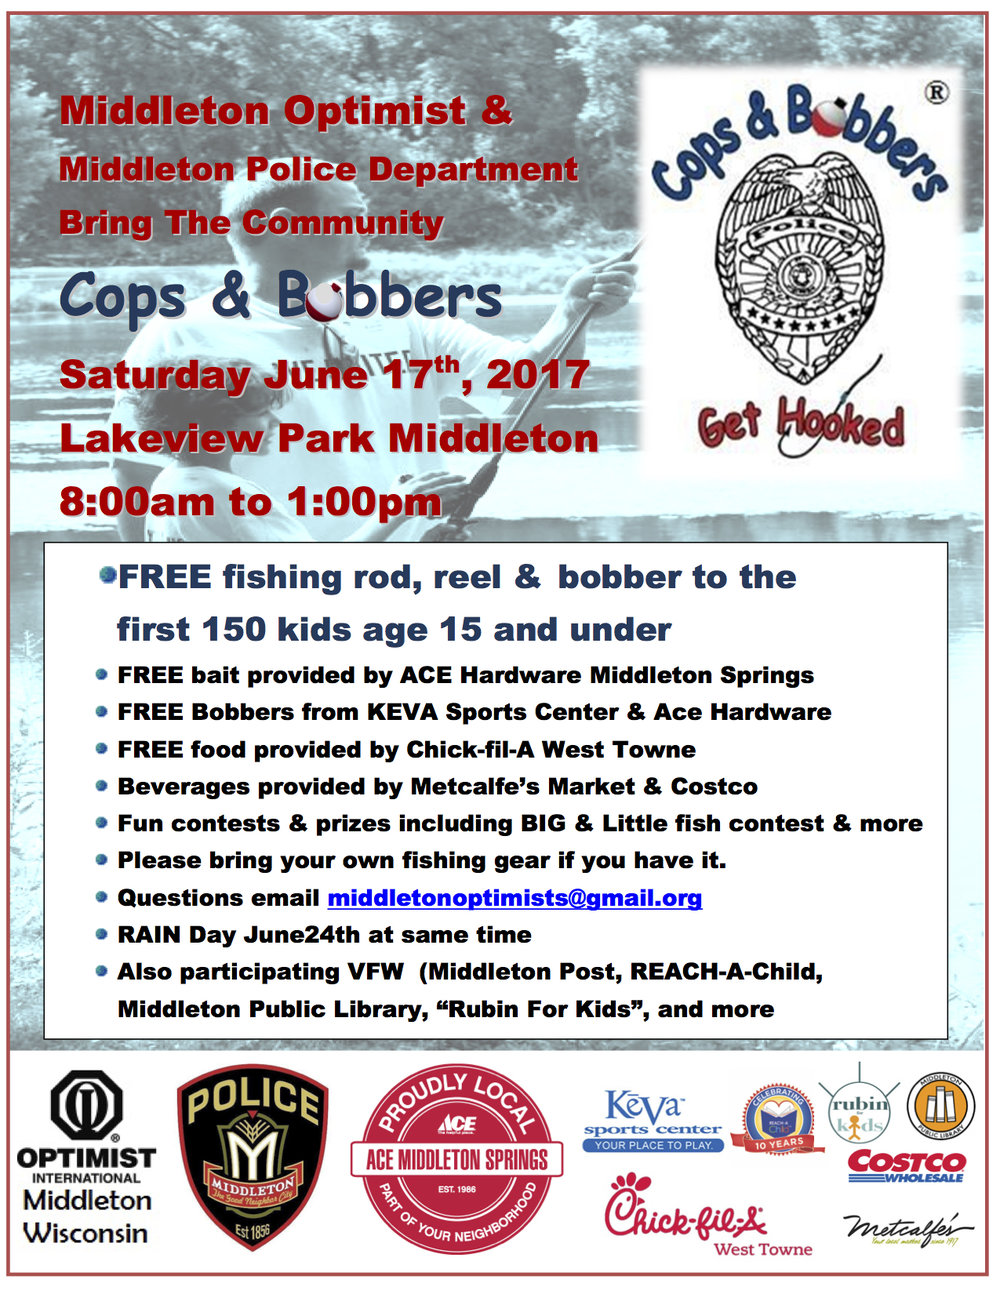 Please join us on Saturday 17th from 8am - 1pm at Cops & Bobbers event and Lakeview Park in Middleton!!